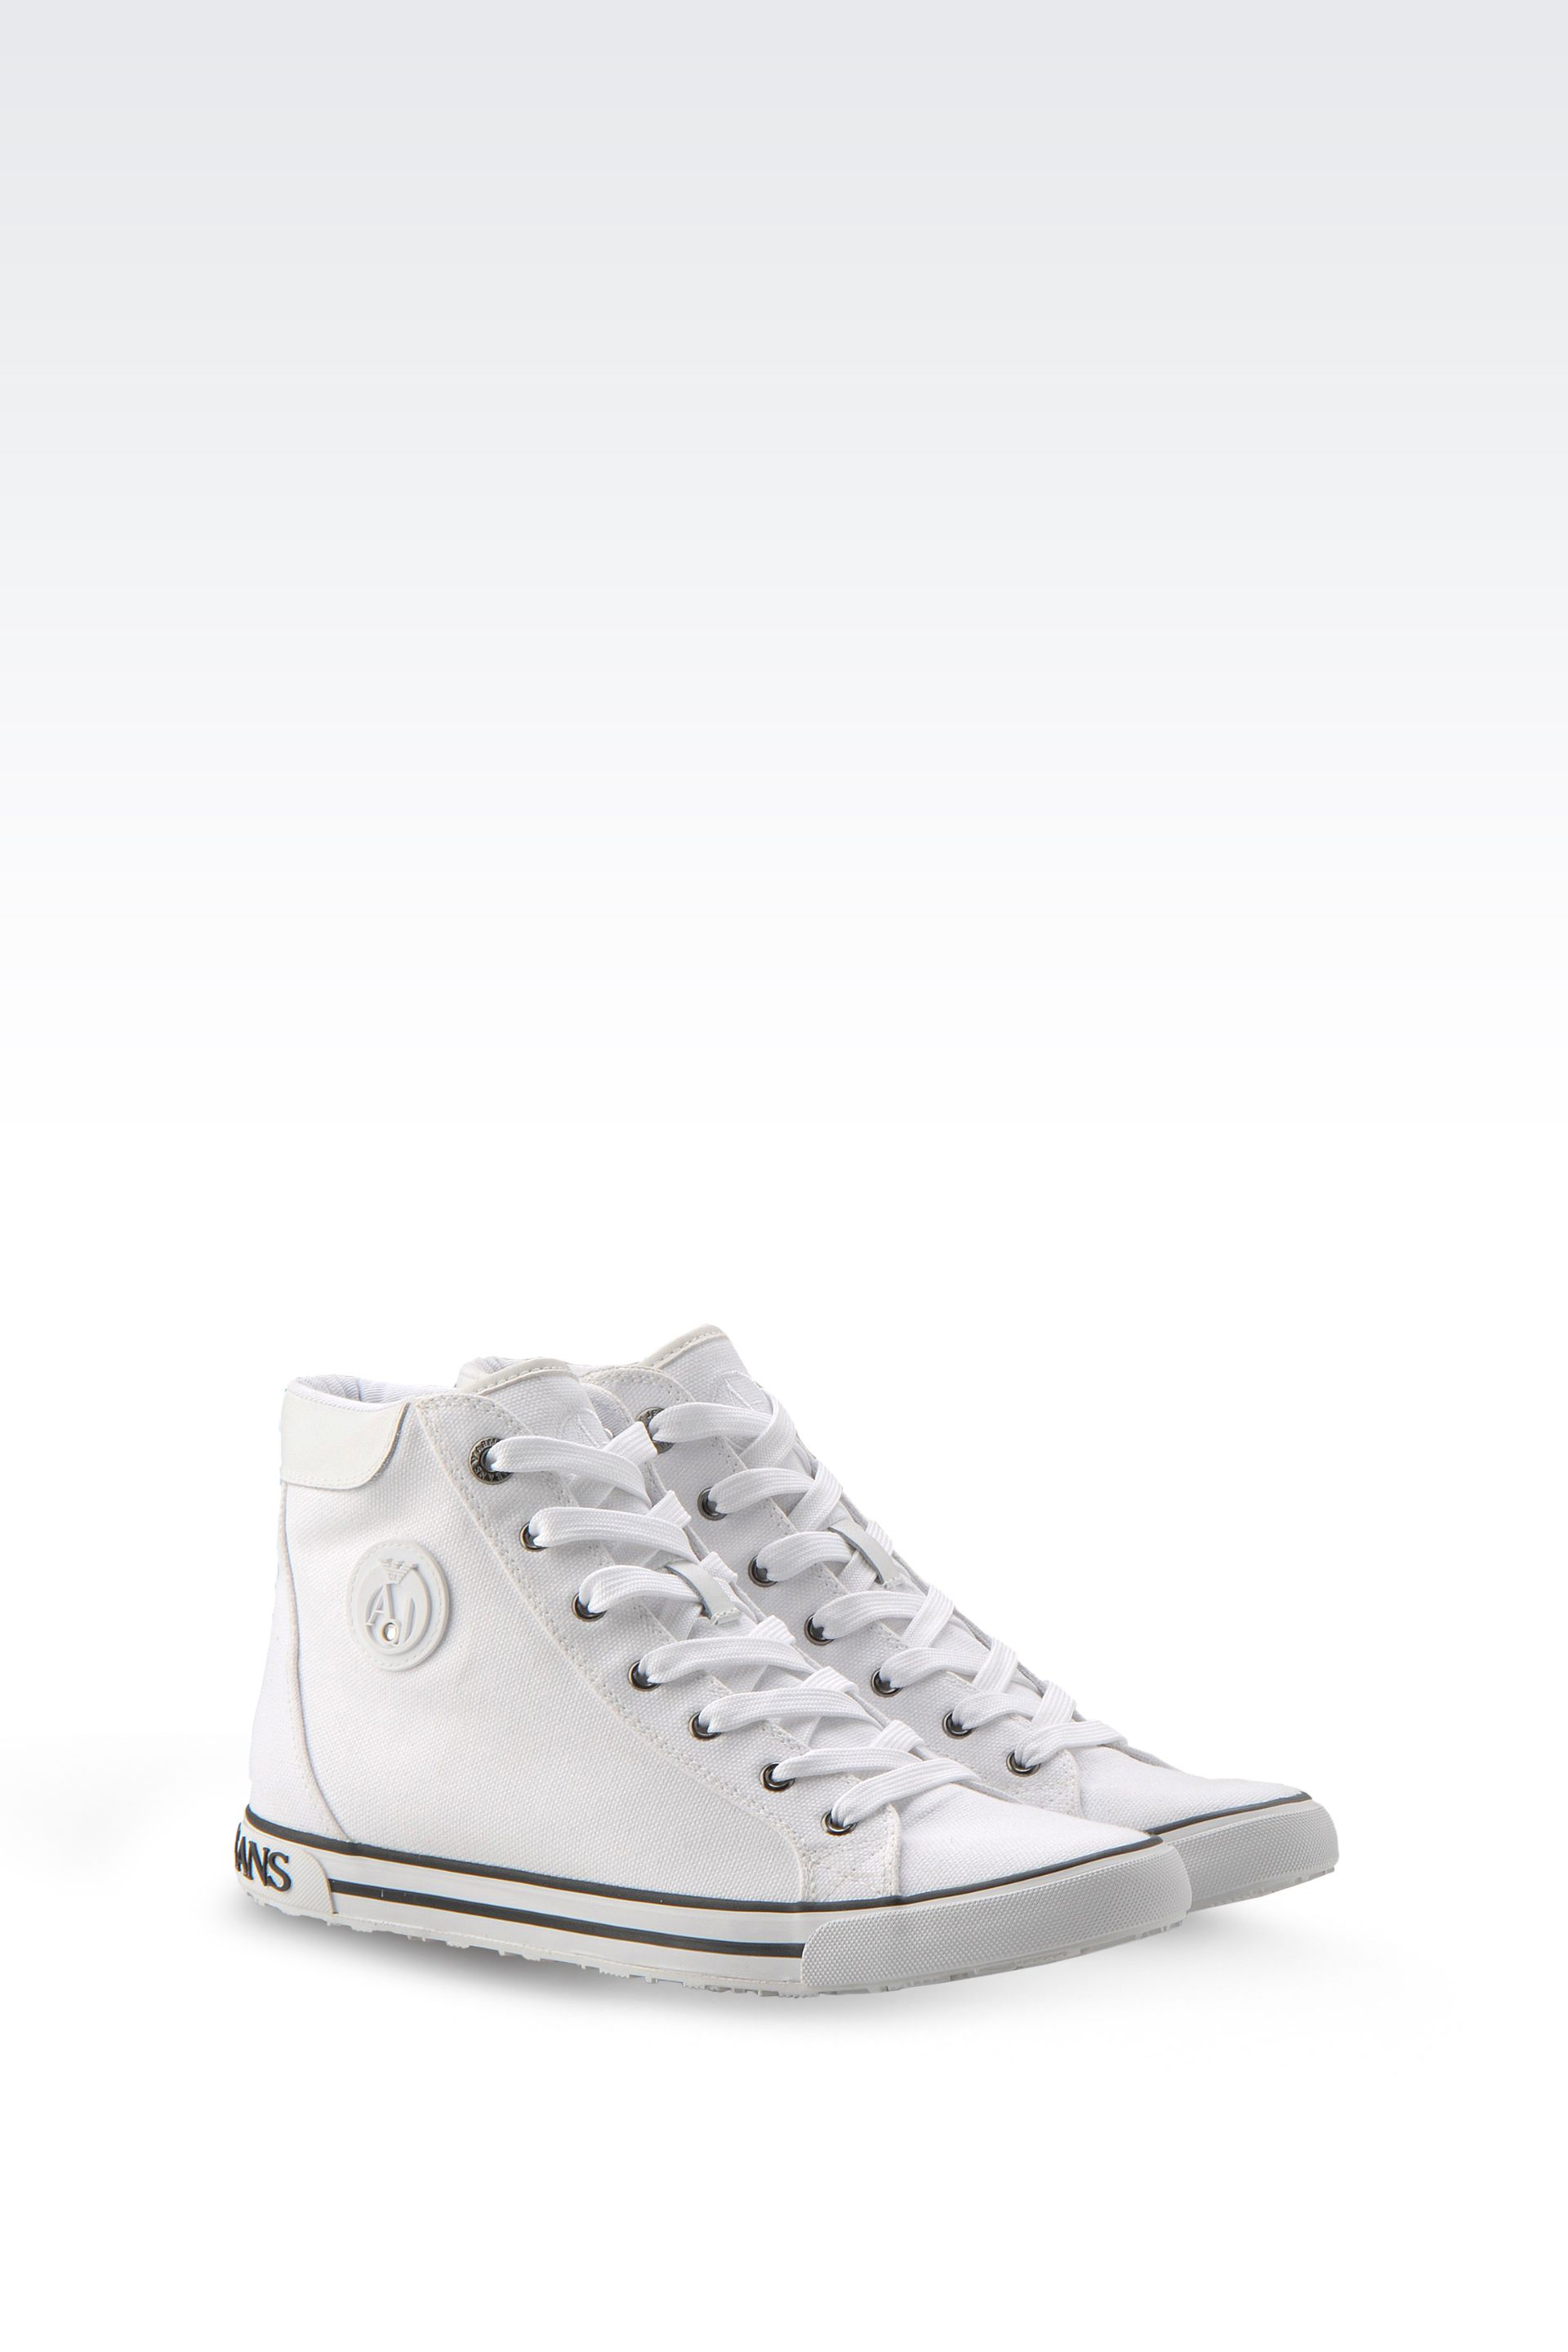 armani jeans hightop canvas sneaker with logo in white lyst. Black Bedroom Furniture Sets. Home Design Ideas